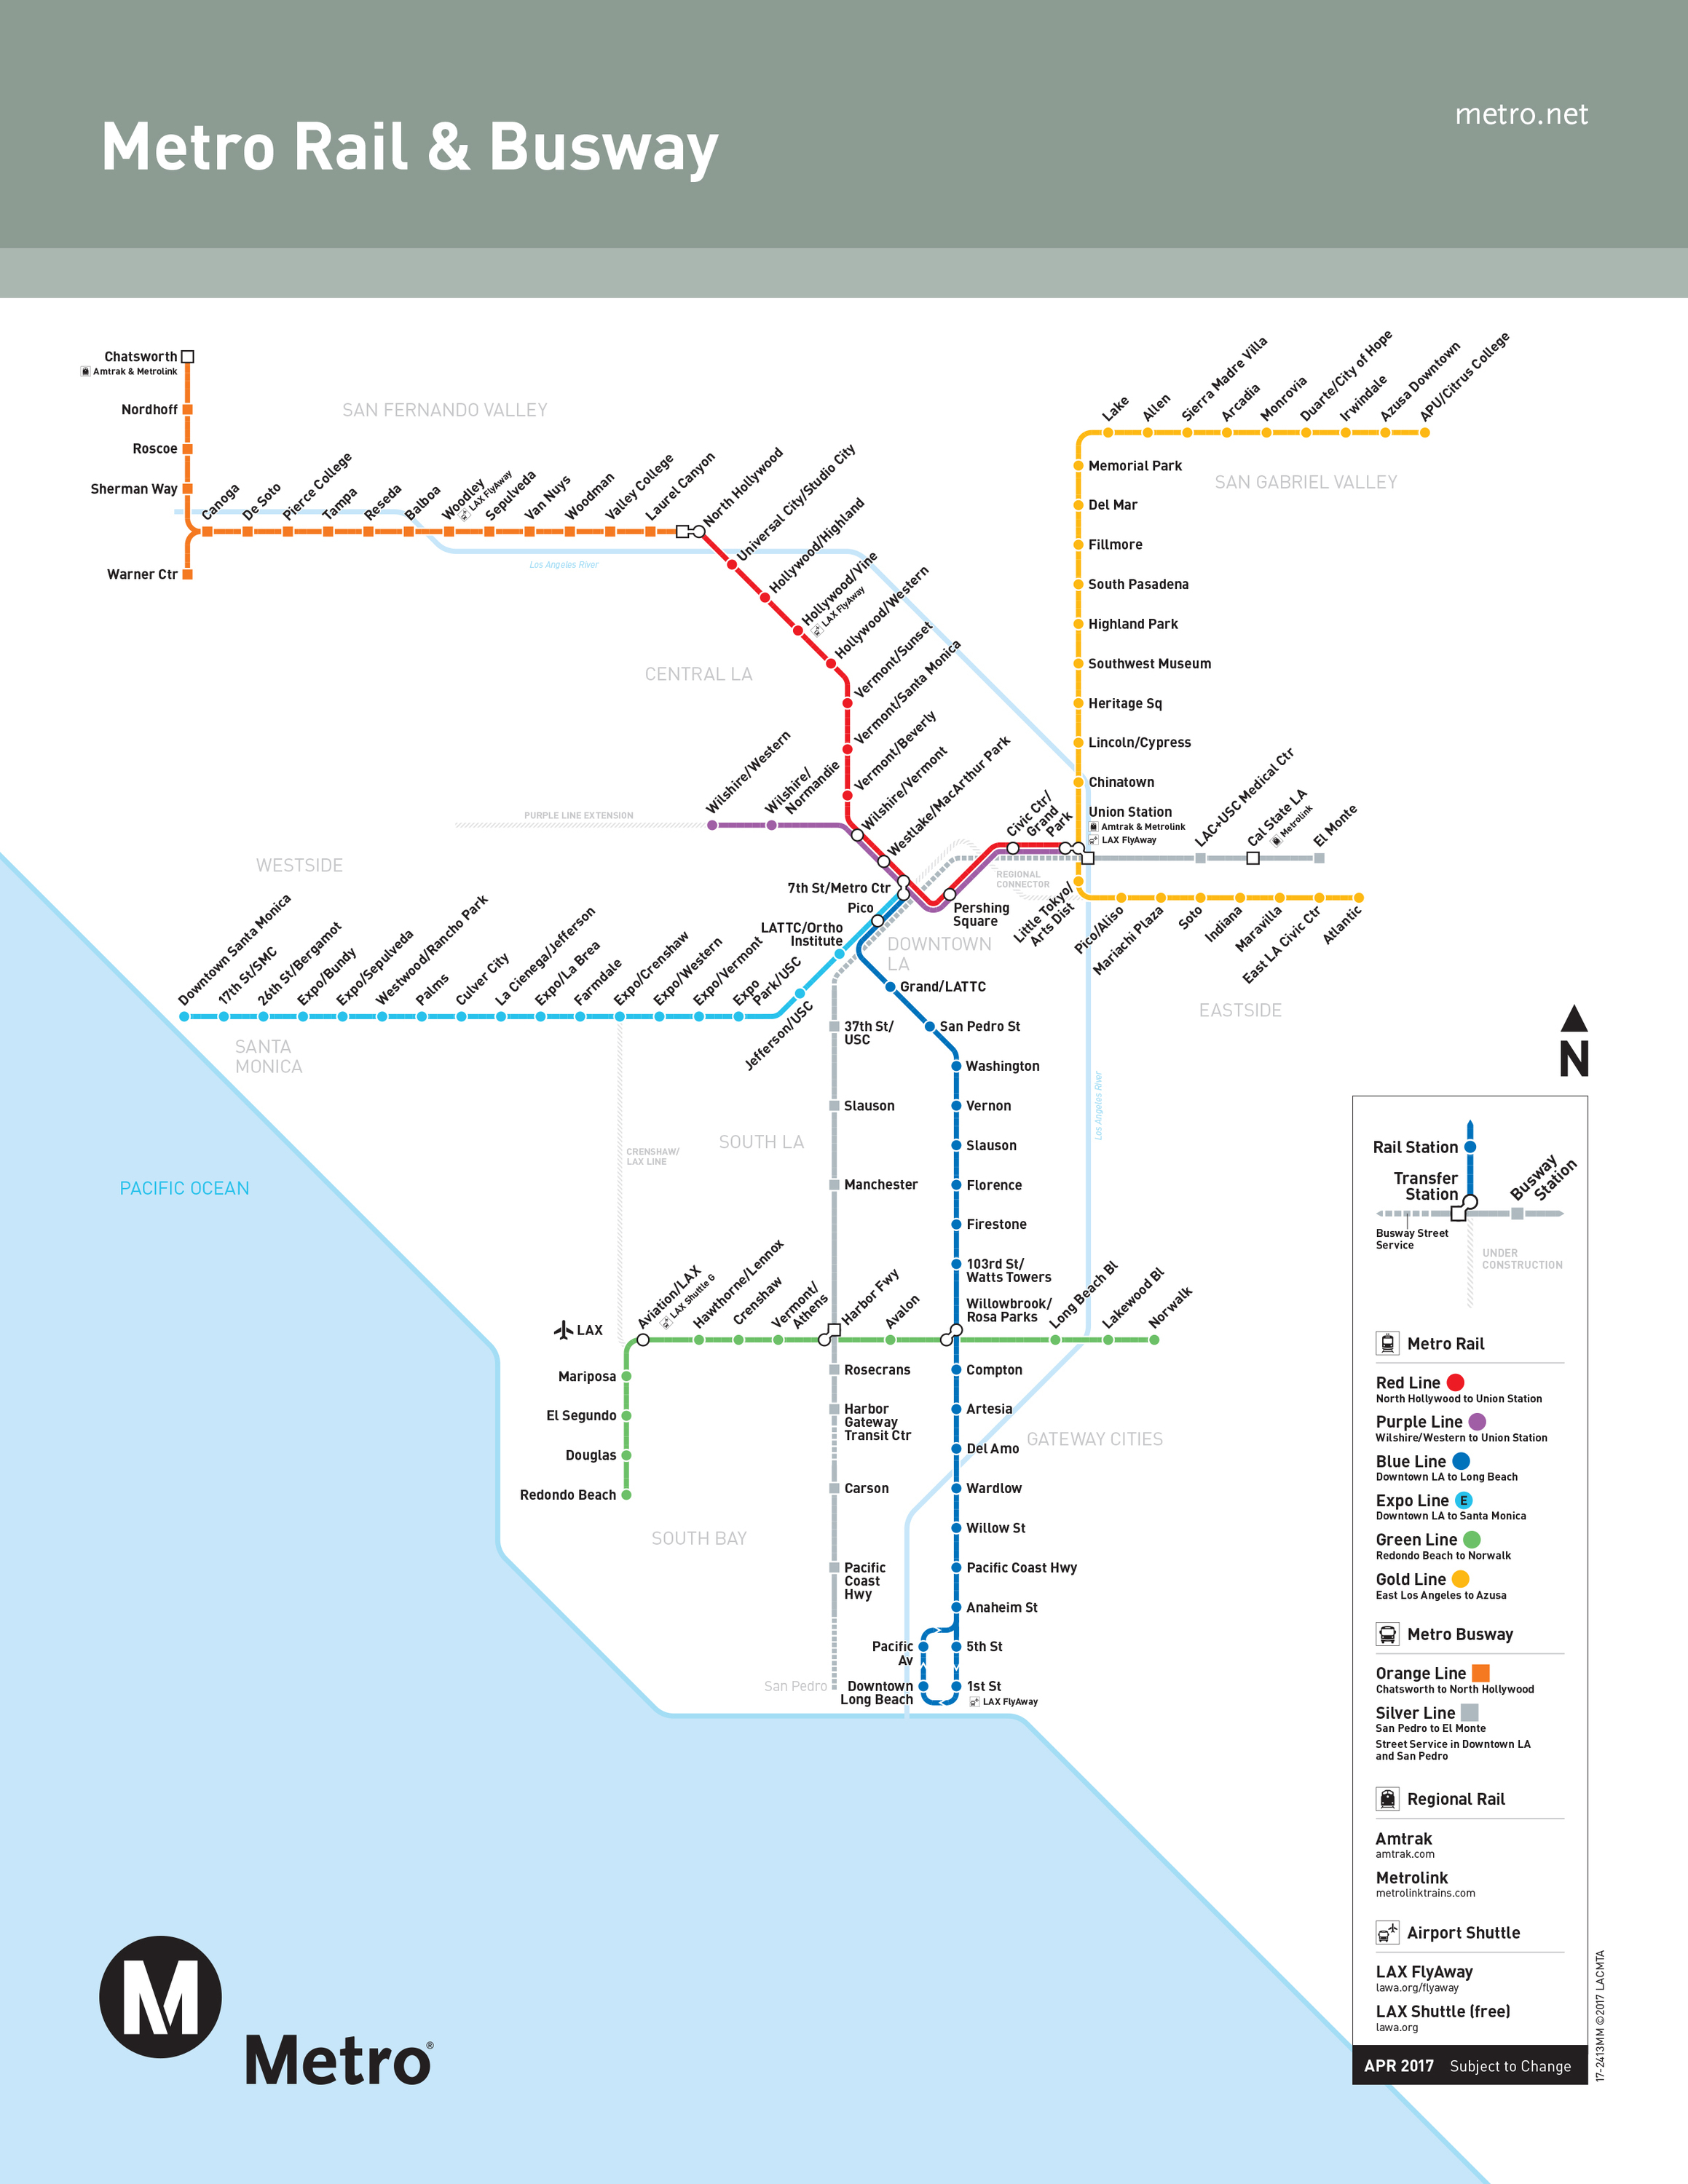 A Los Angeles Metro Guide For Getting Around L.a. Car-Free - California Metro Map